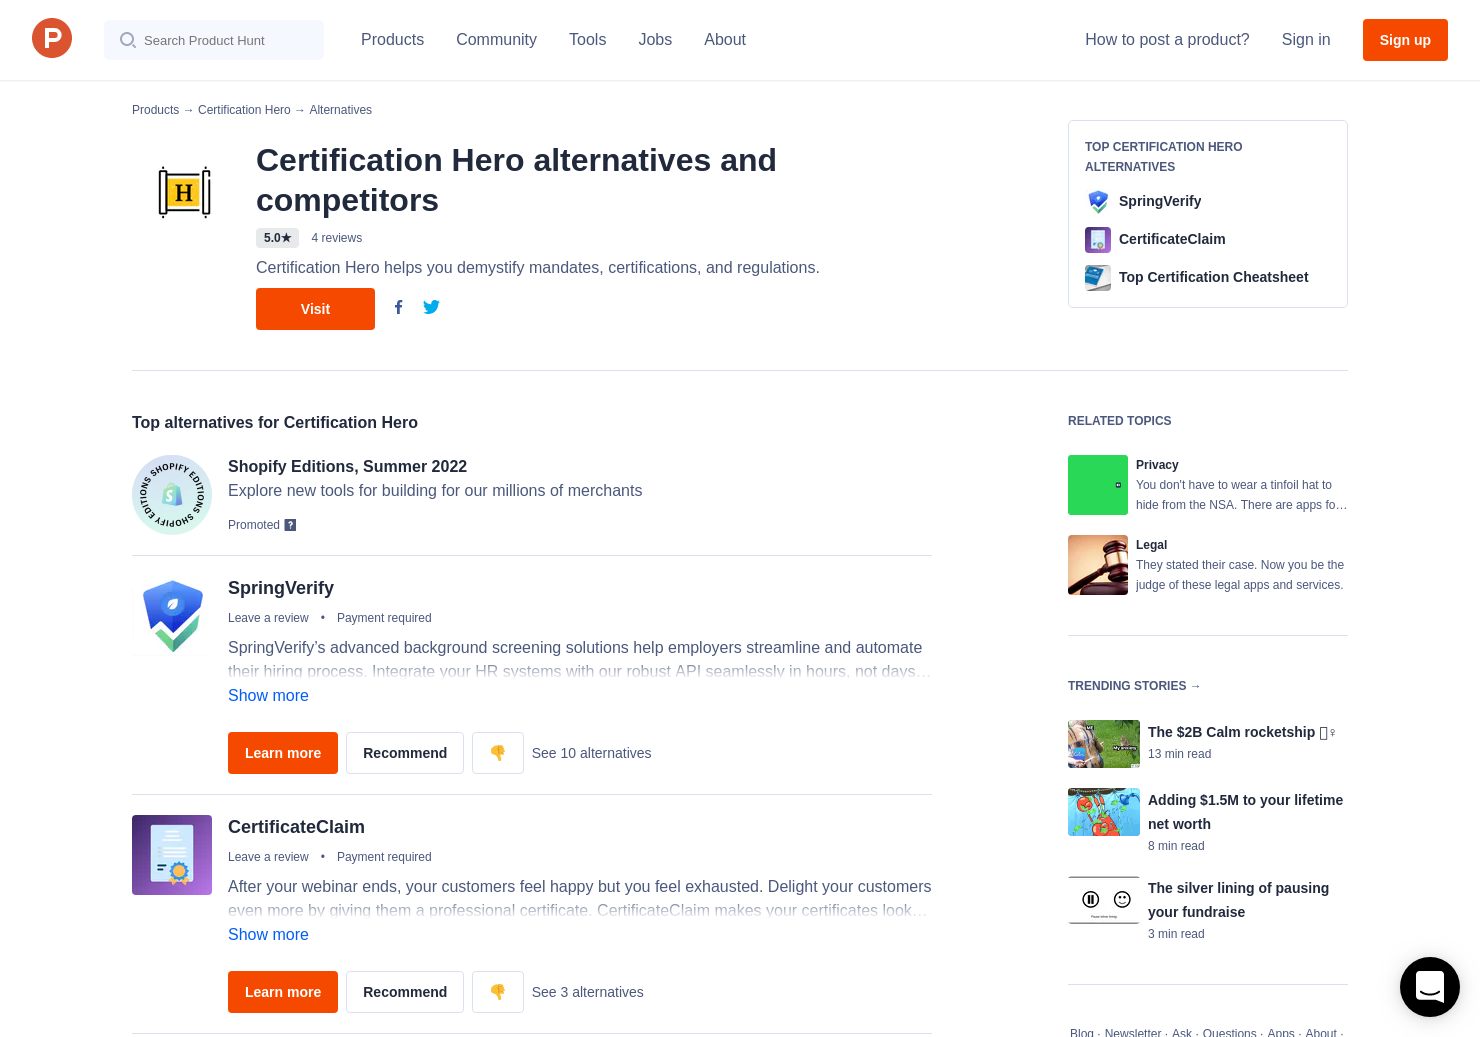 5 Alternatives To Certification Hero Product Hunt